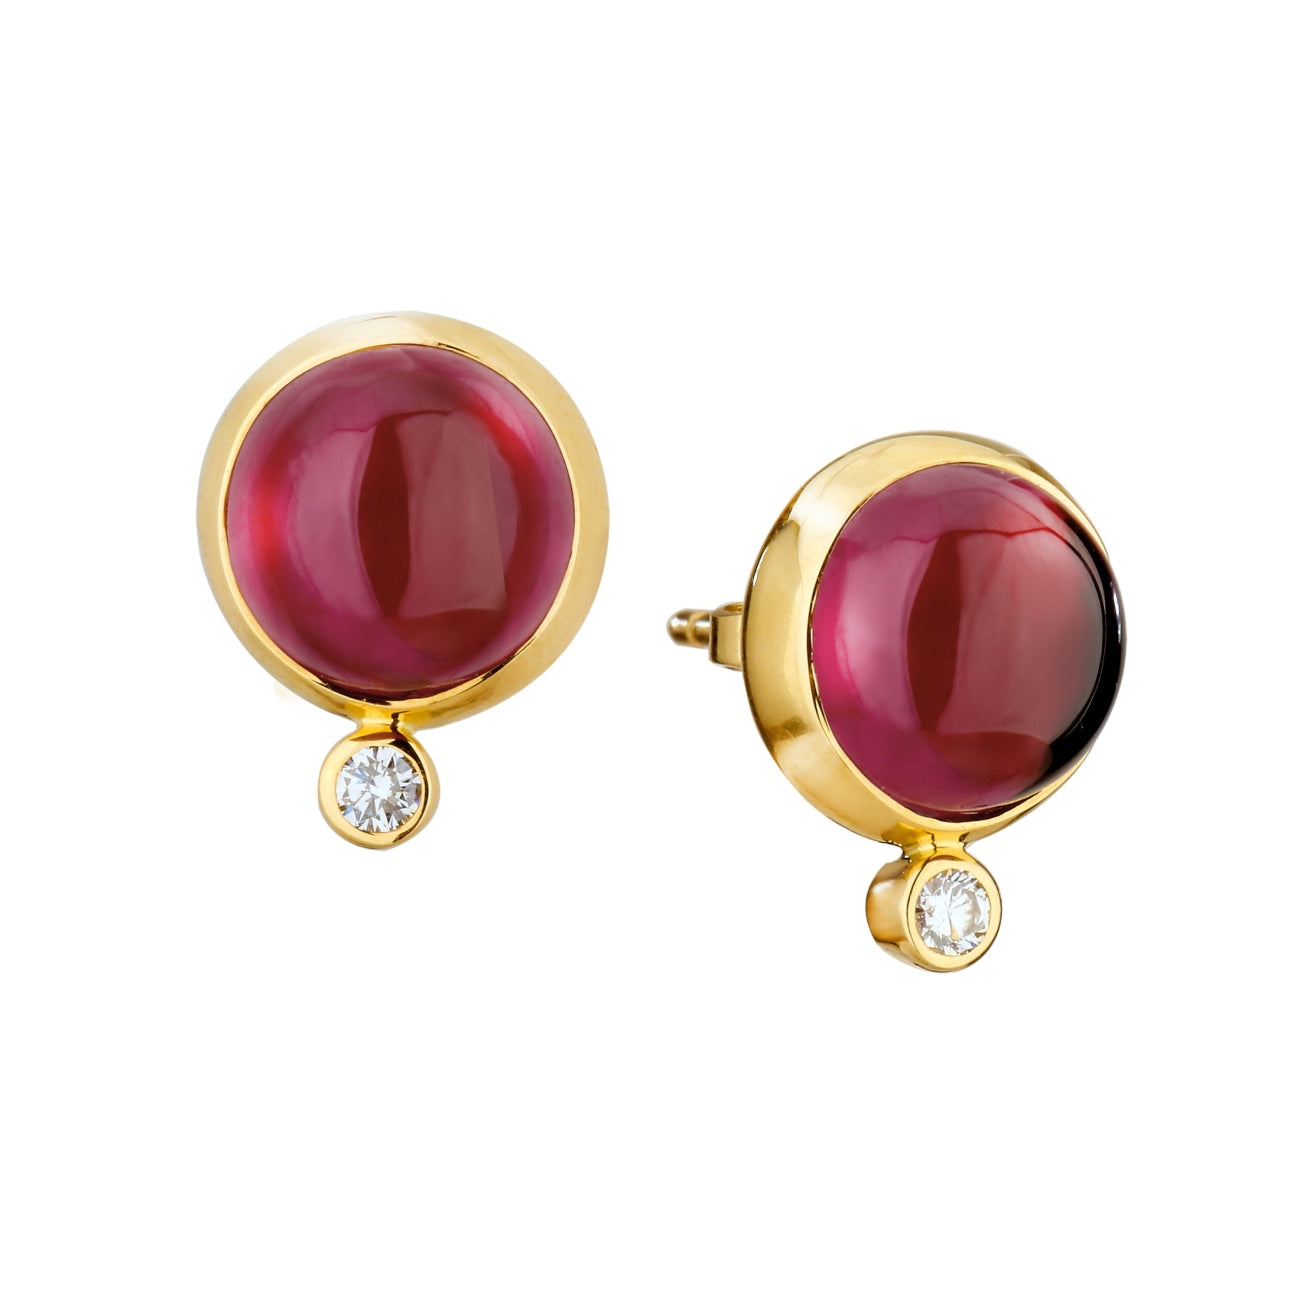 Syna Jewelry - Syna Rhodolite Garnet Earrings with Champagne Diamonds Yellow Gold | Manfredi Jewels